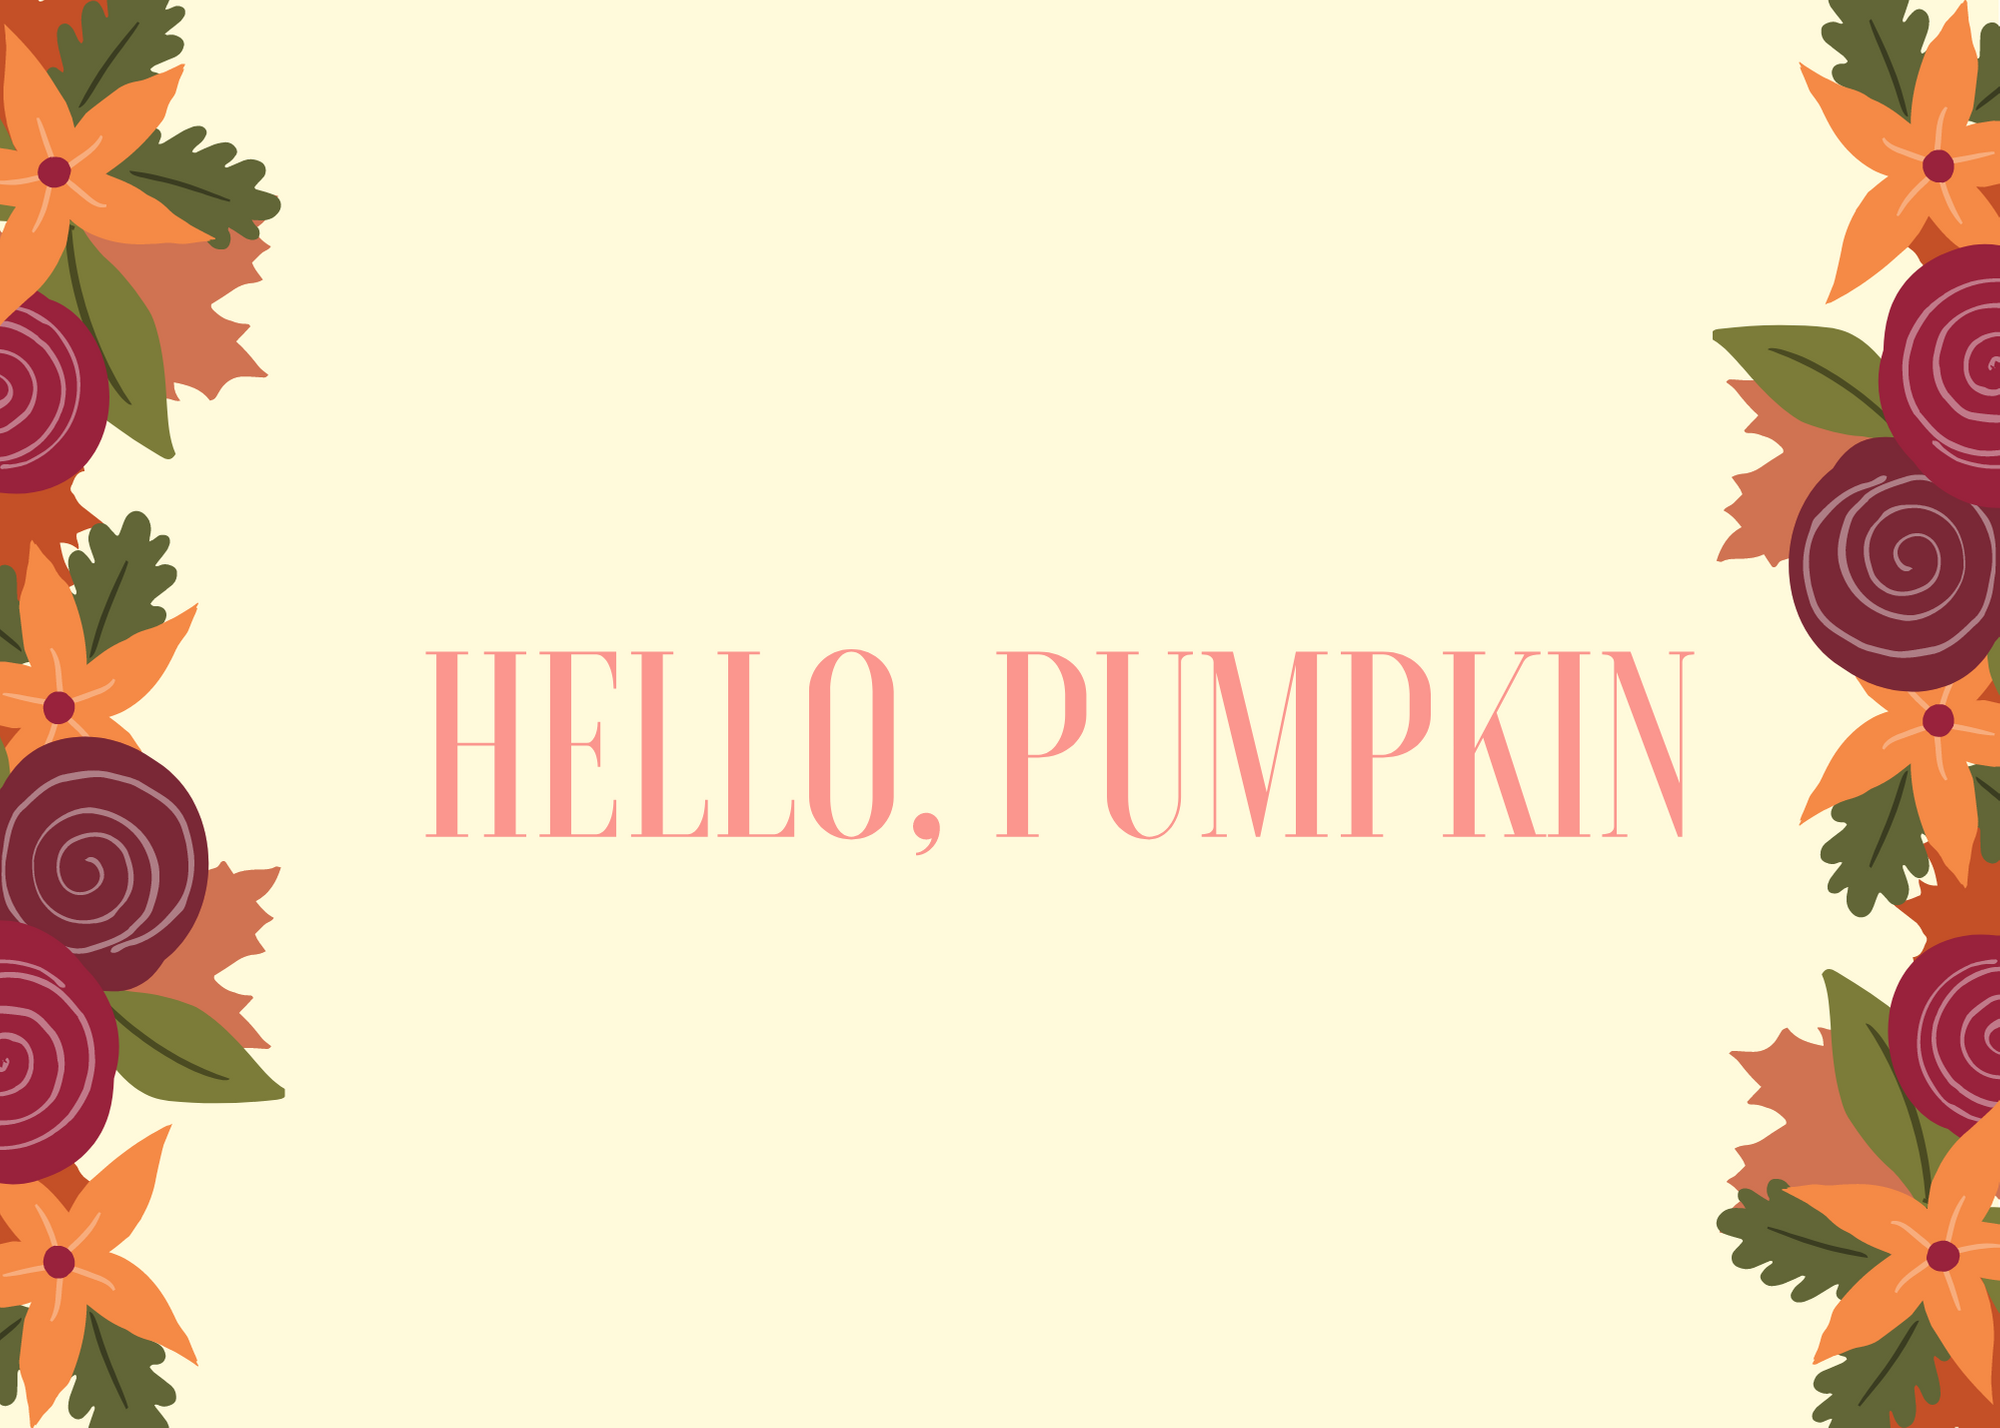 Funny Fall Instagram Caption About Hello Pumpkin